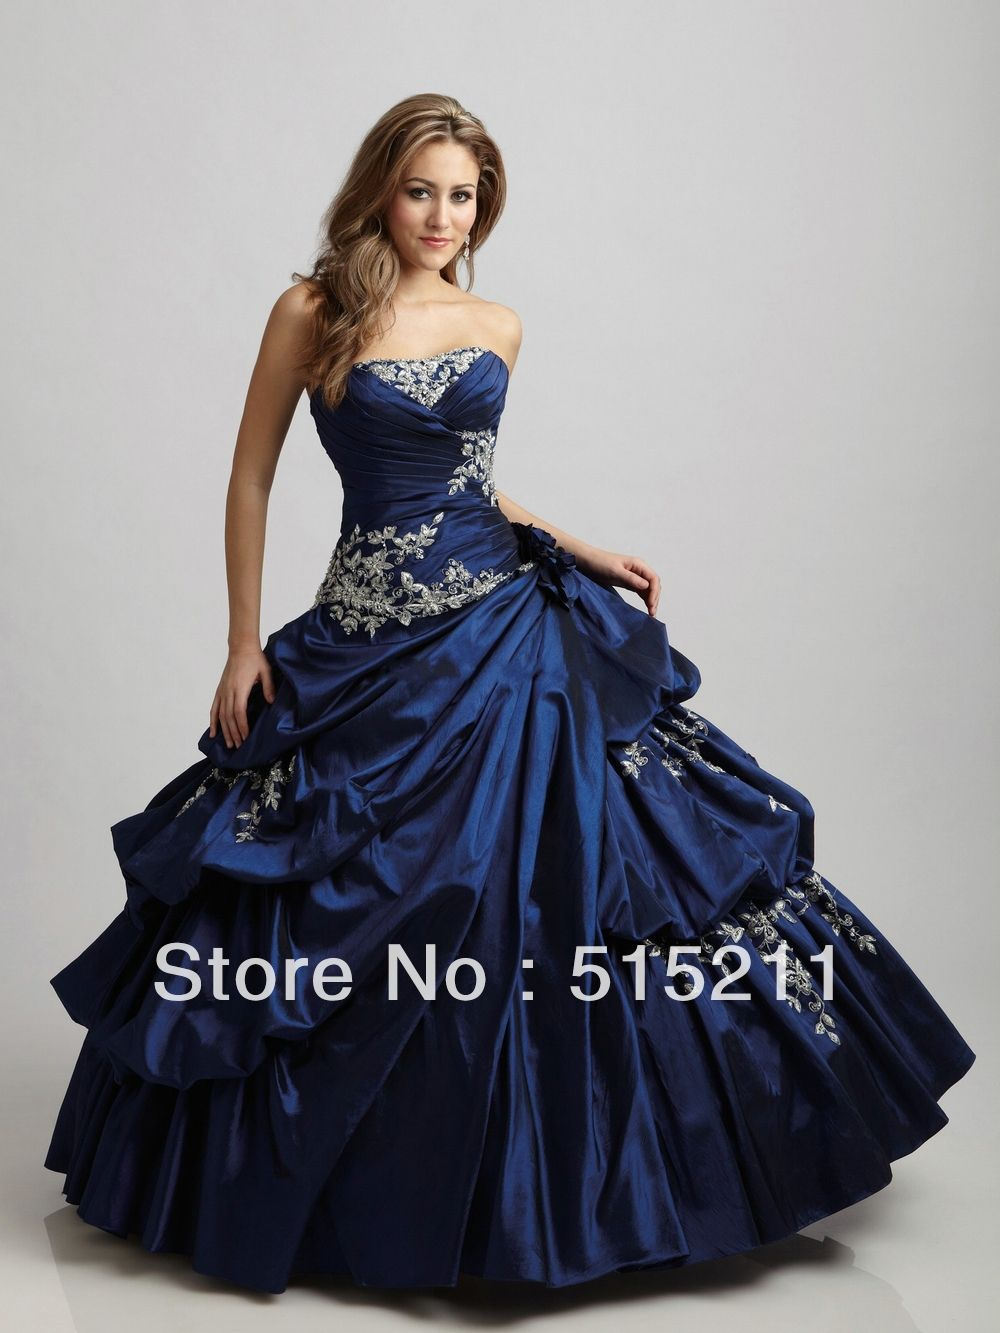 Victorian Ball Gowns | ... Victorian Style Ball Gown Prom Dress ...